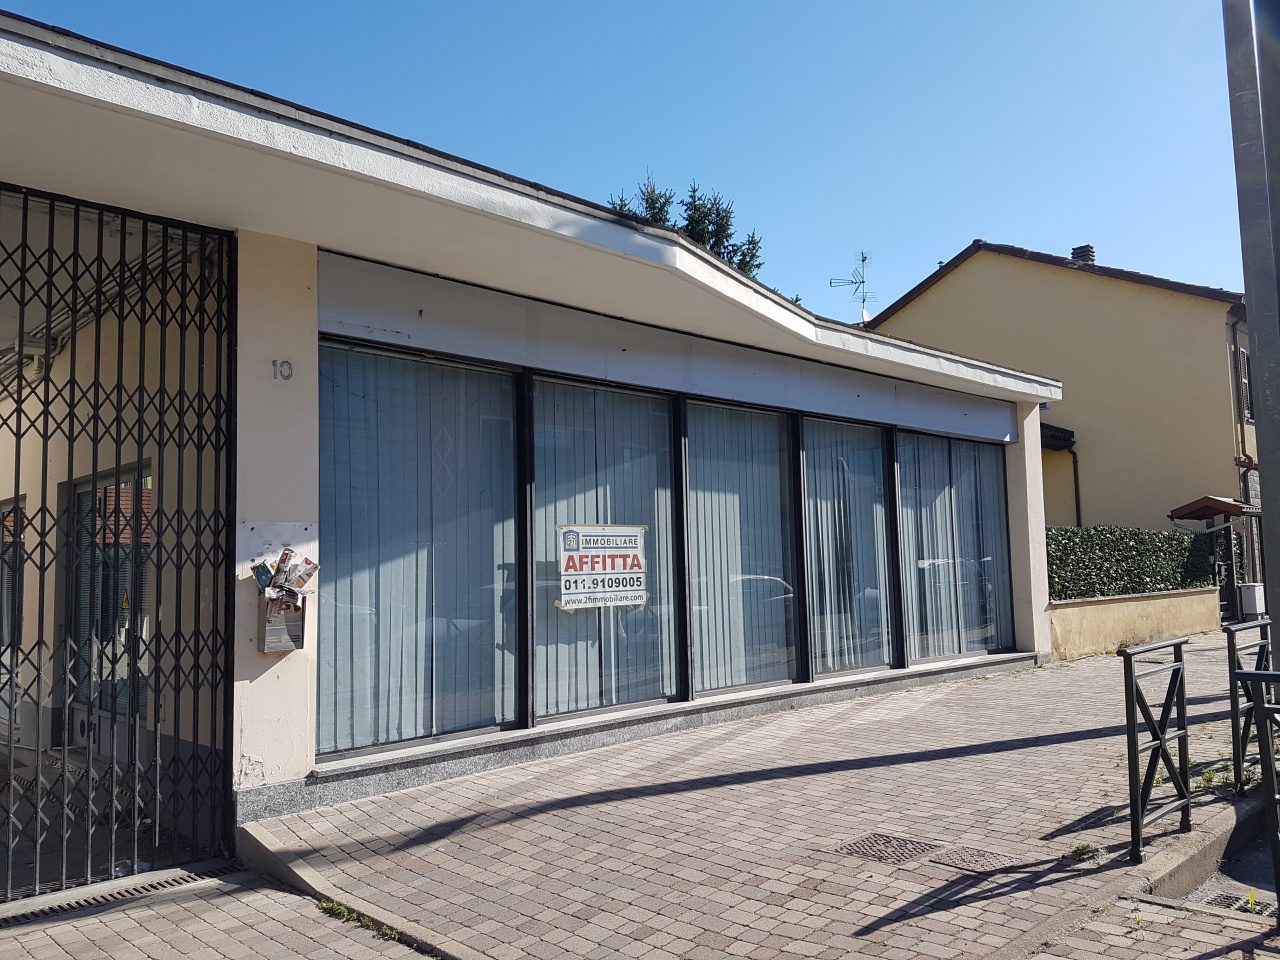 Locale commerciale in affitto a chivasso rif 29518 for Affitto commerciale